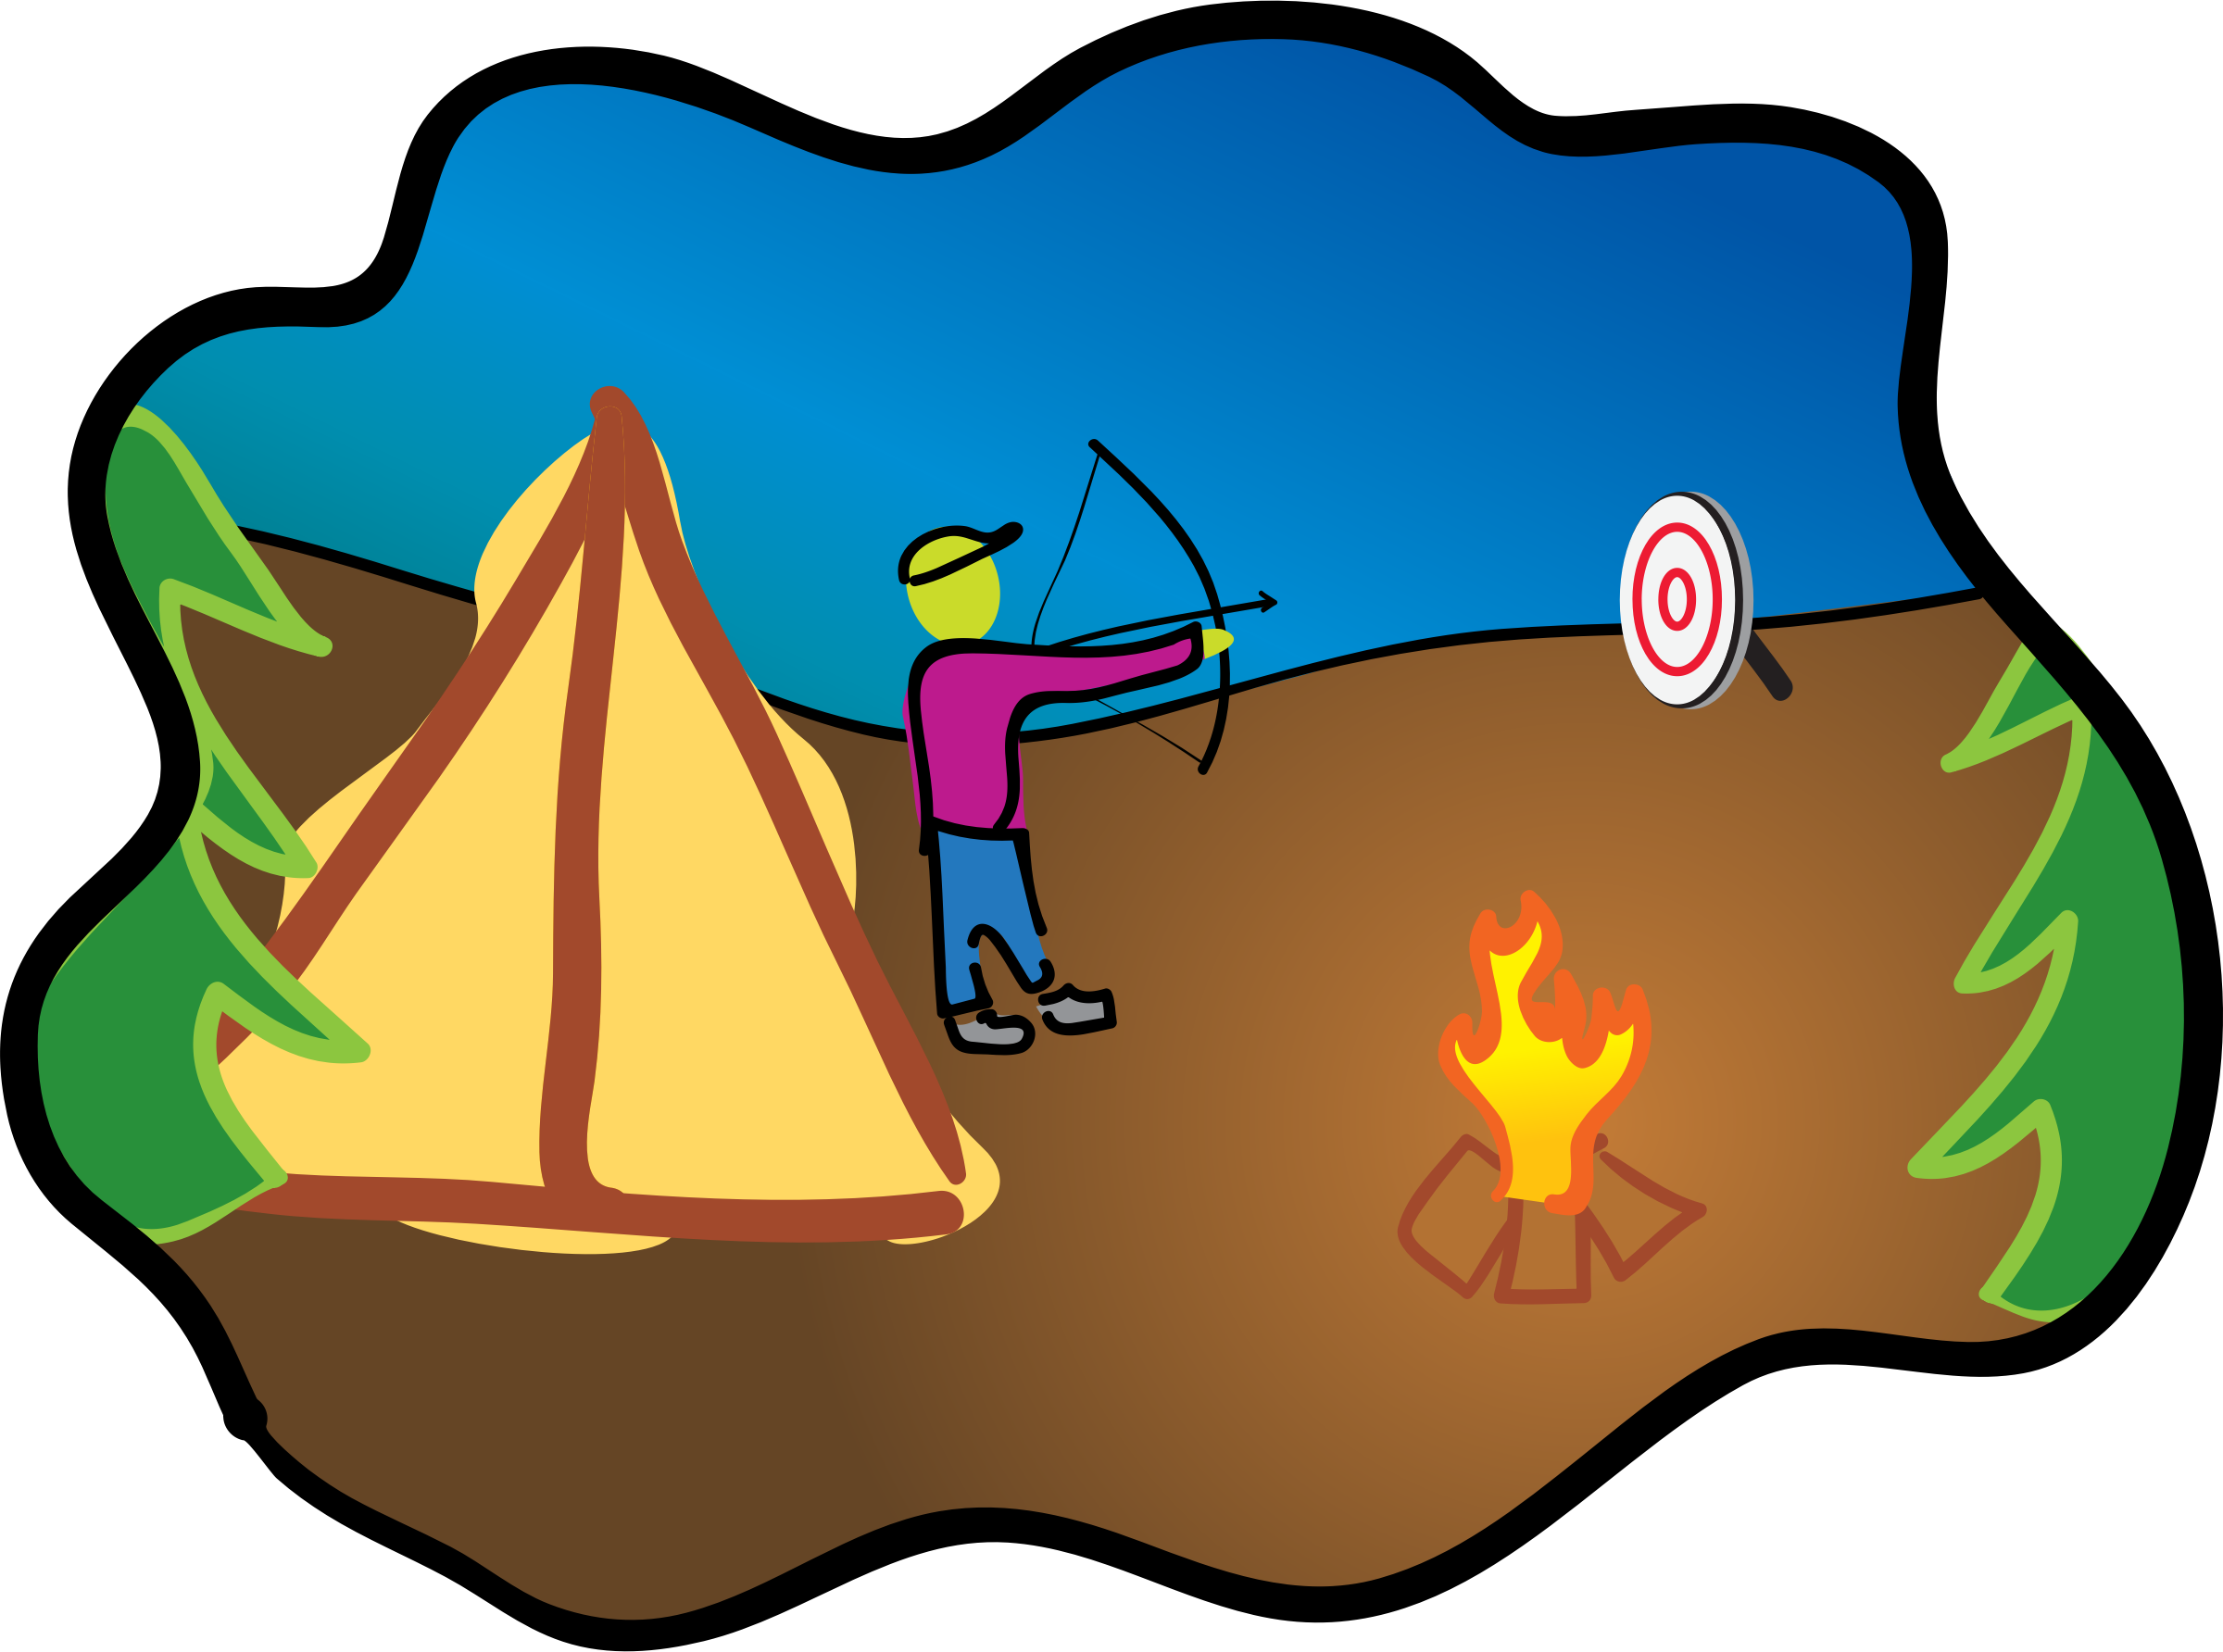 Happy Camping Archery by Dug